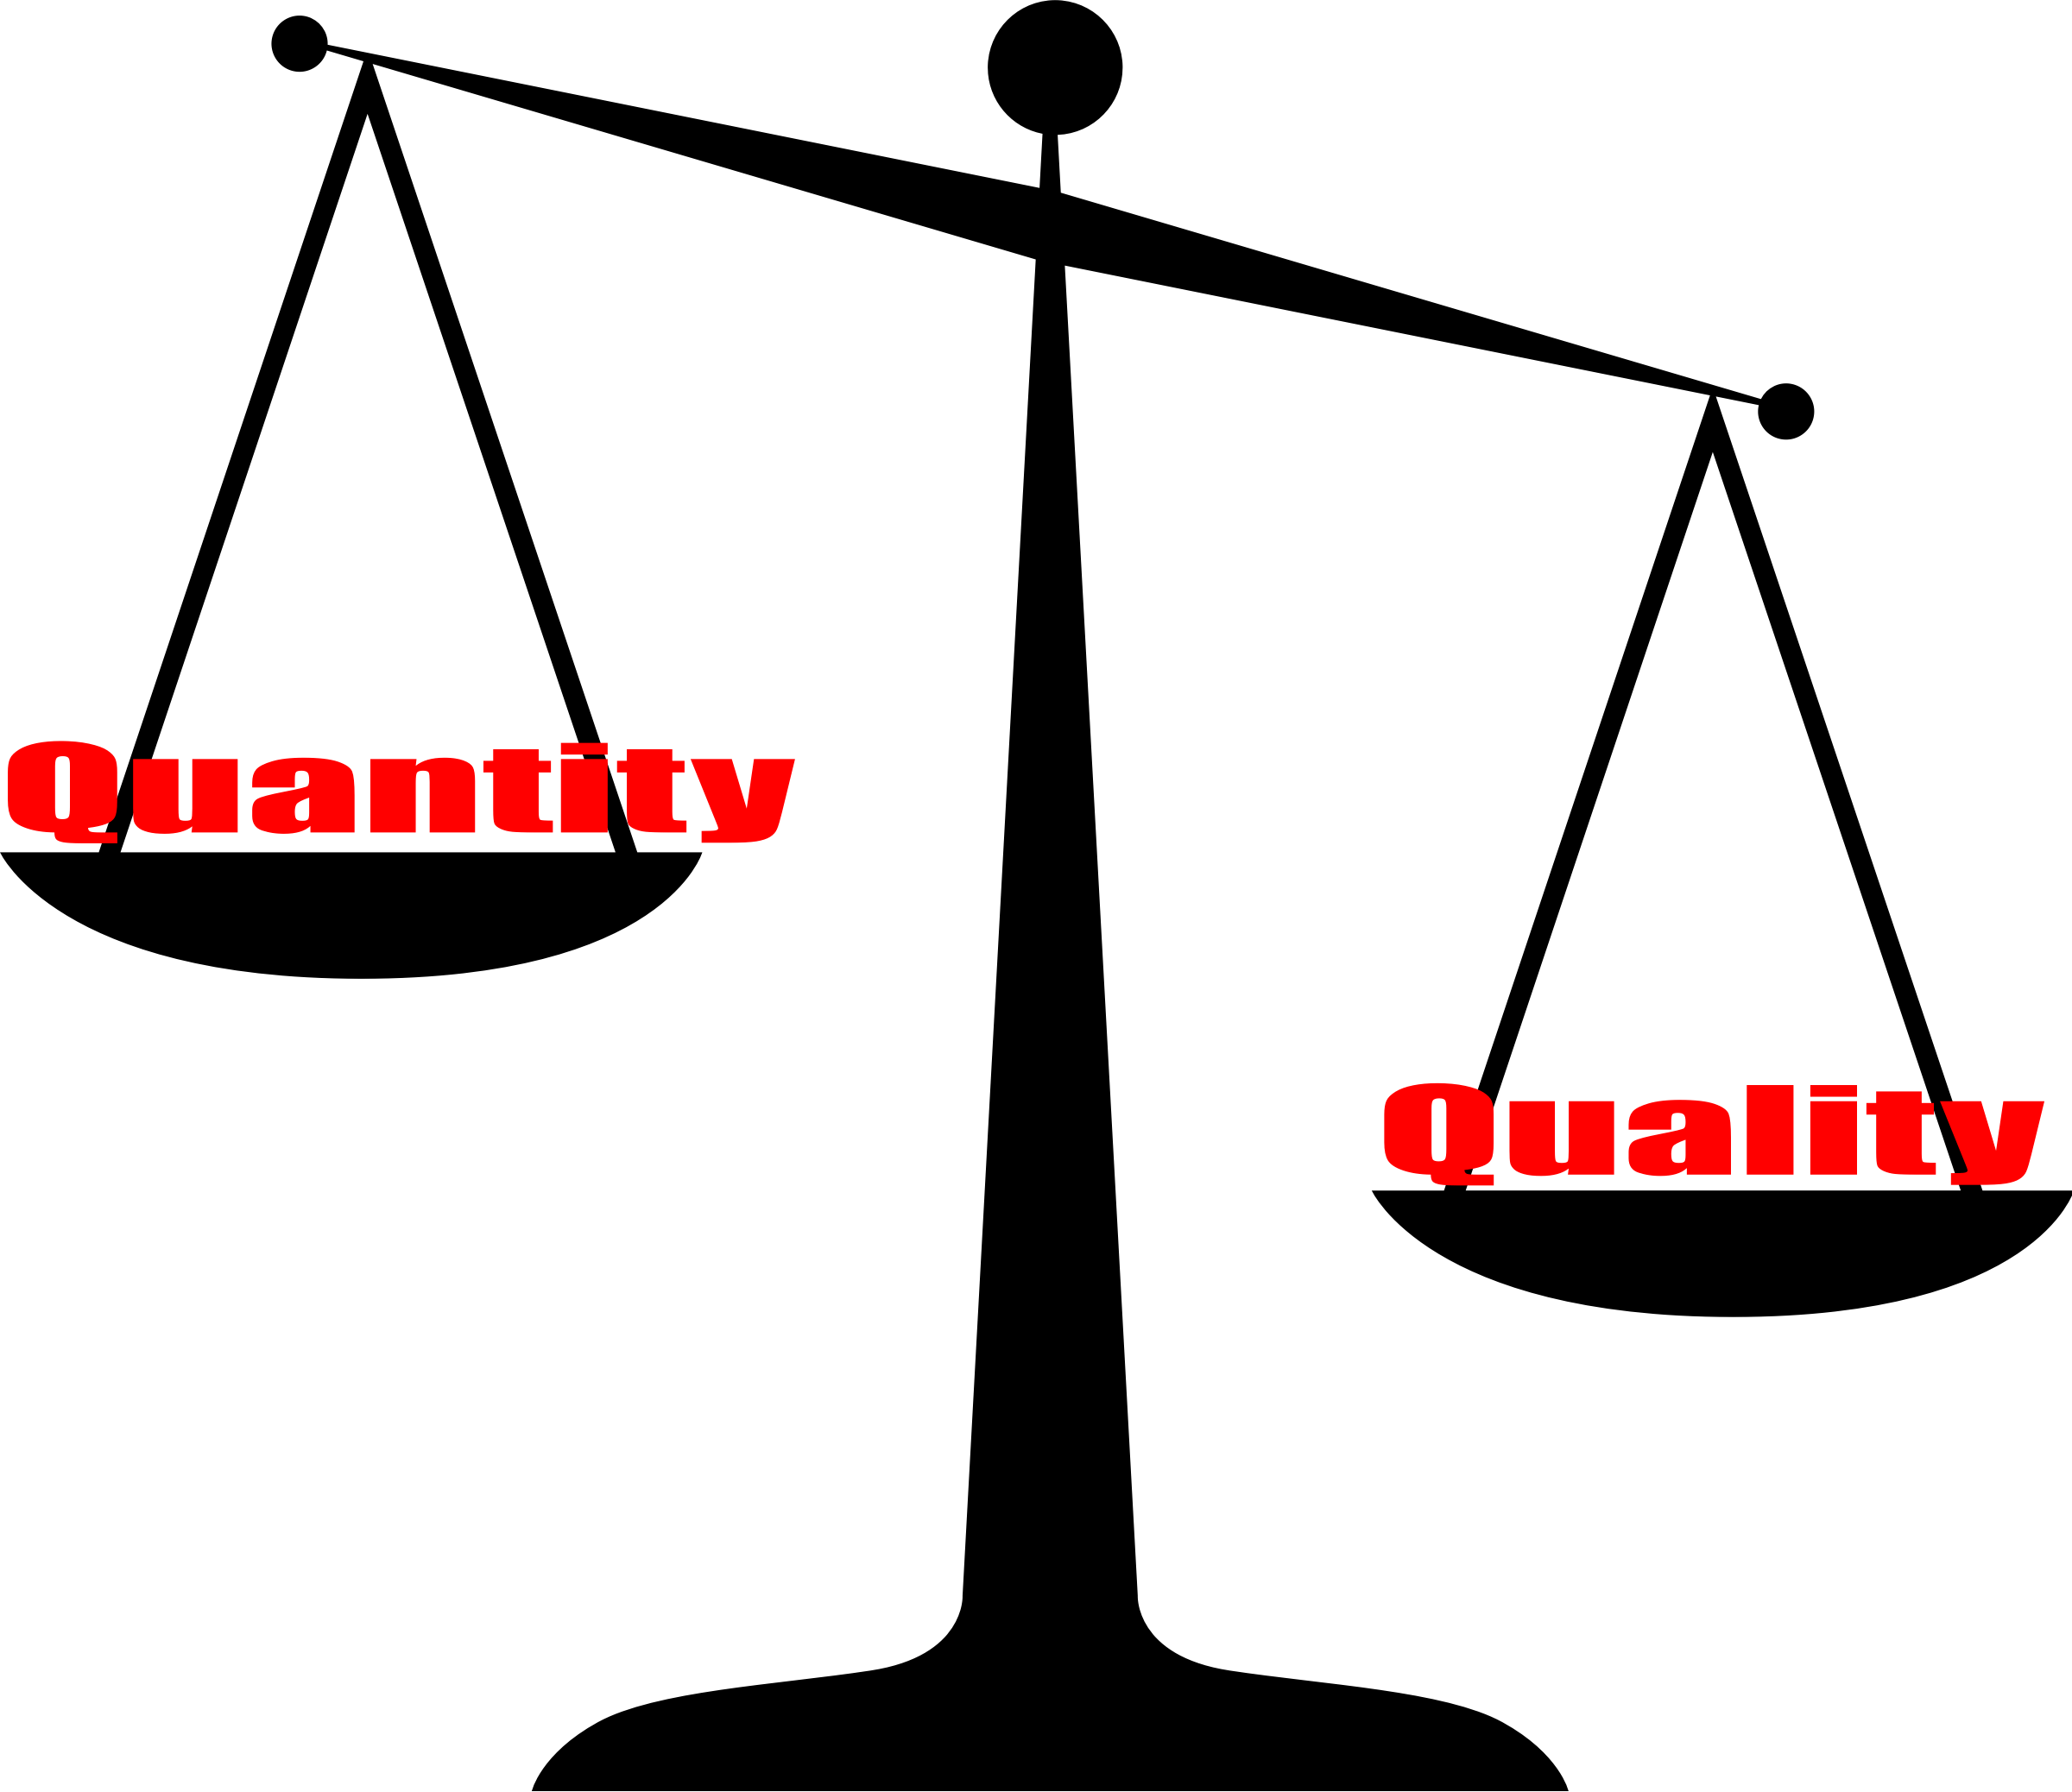 Quality Vs Quantity Vector Clipart Image